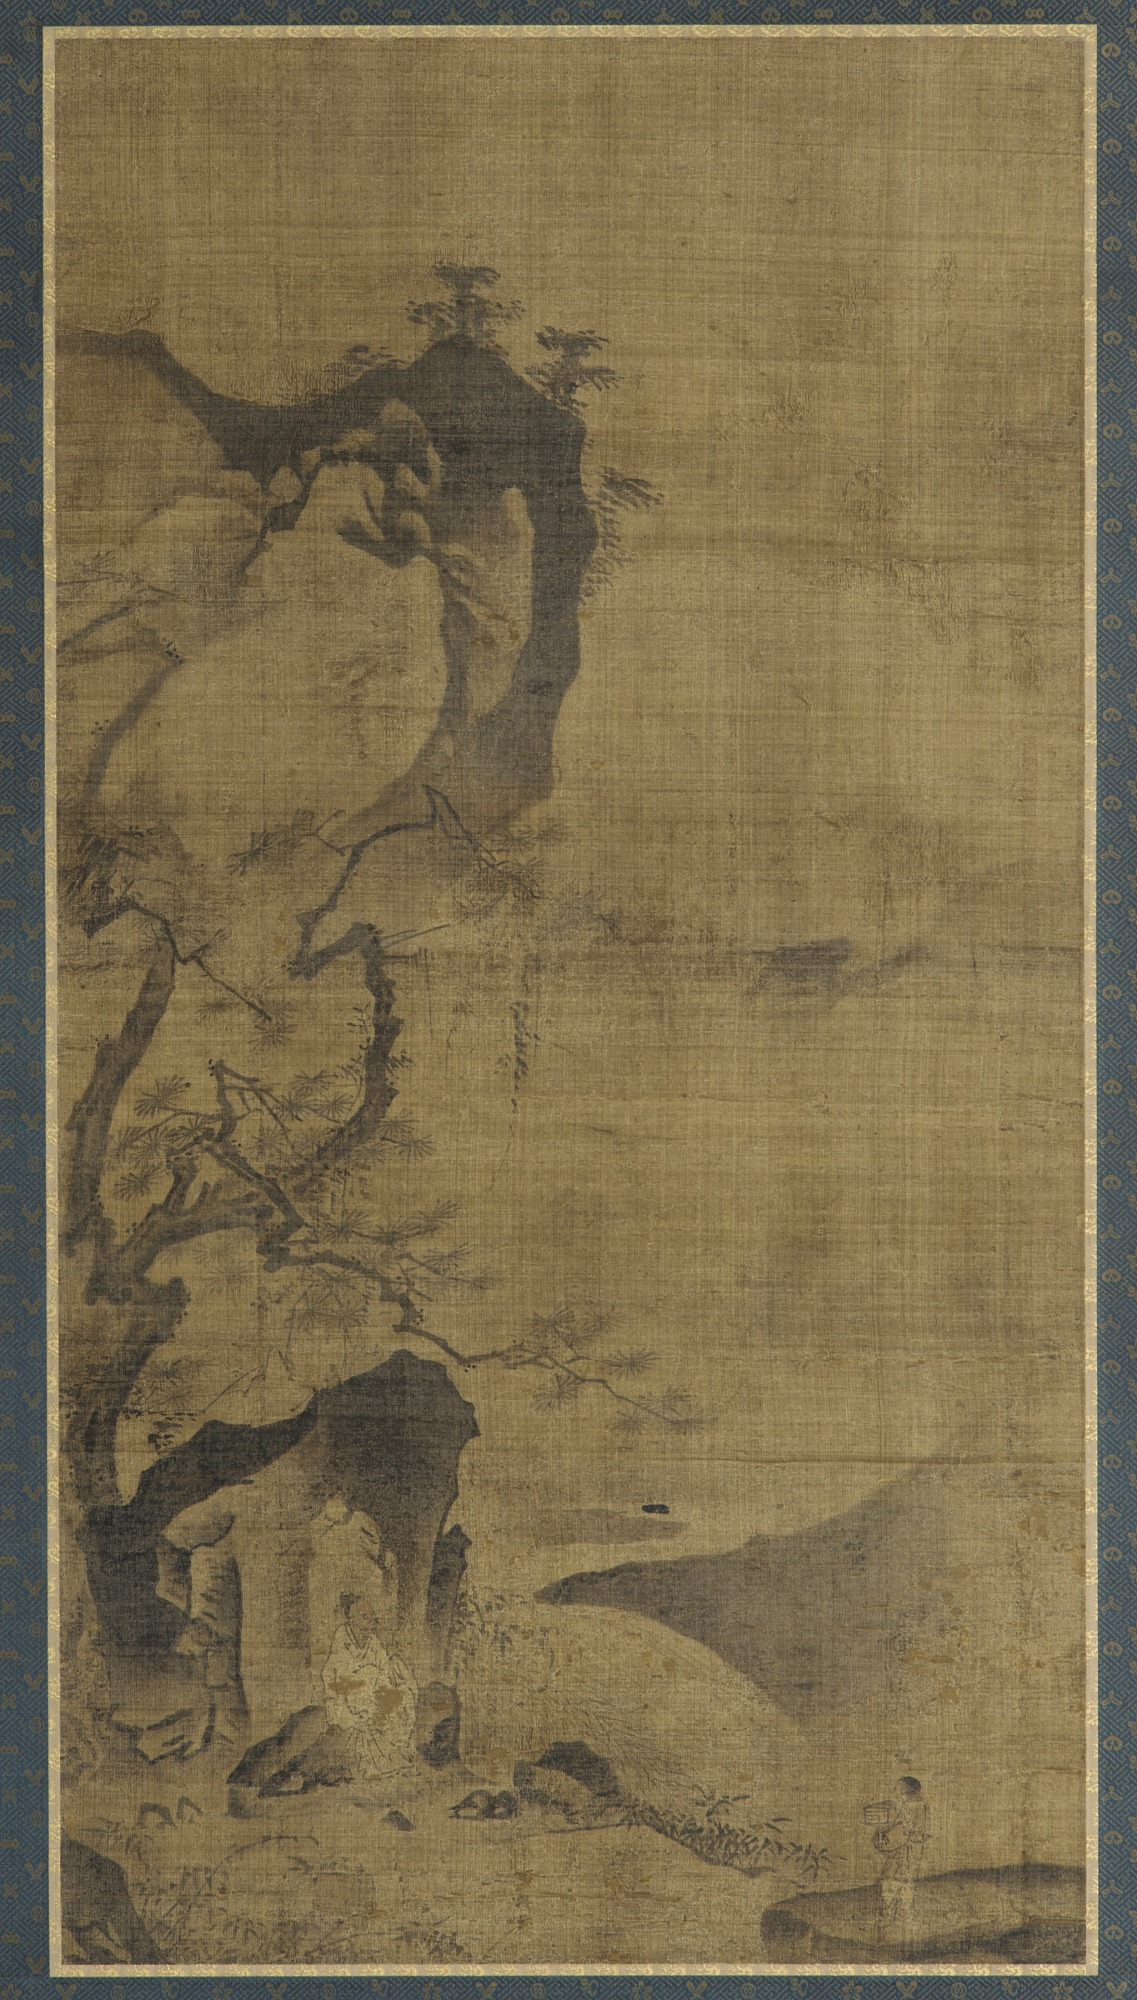 : Landscape: mountains and water; a figure under a pine tree